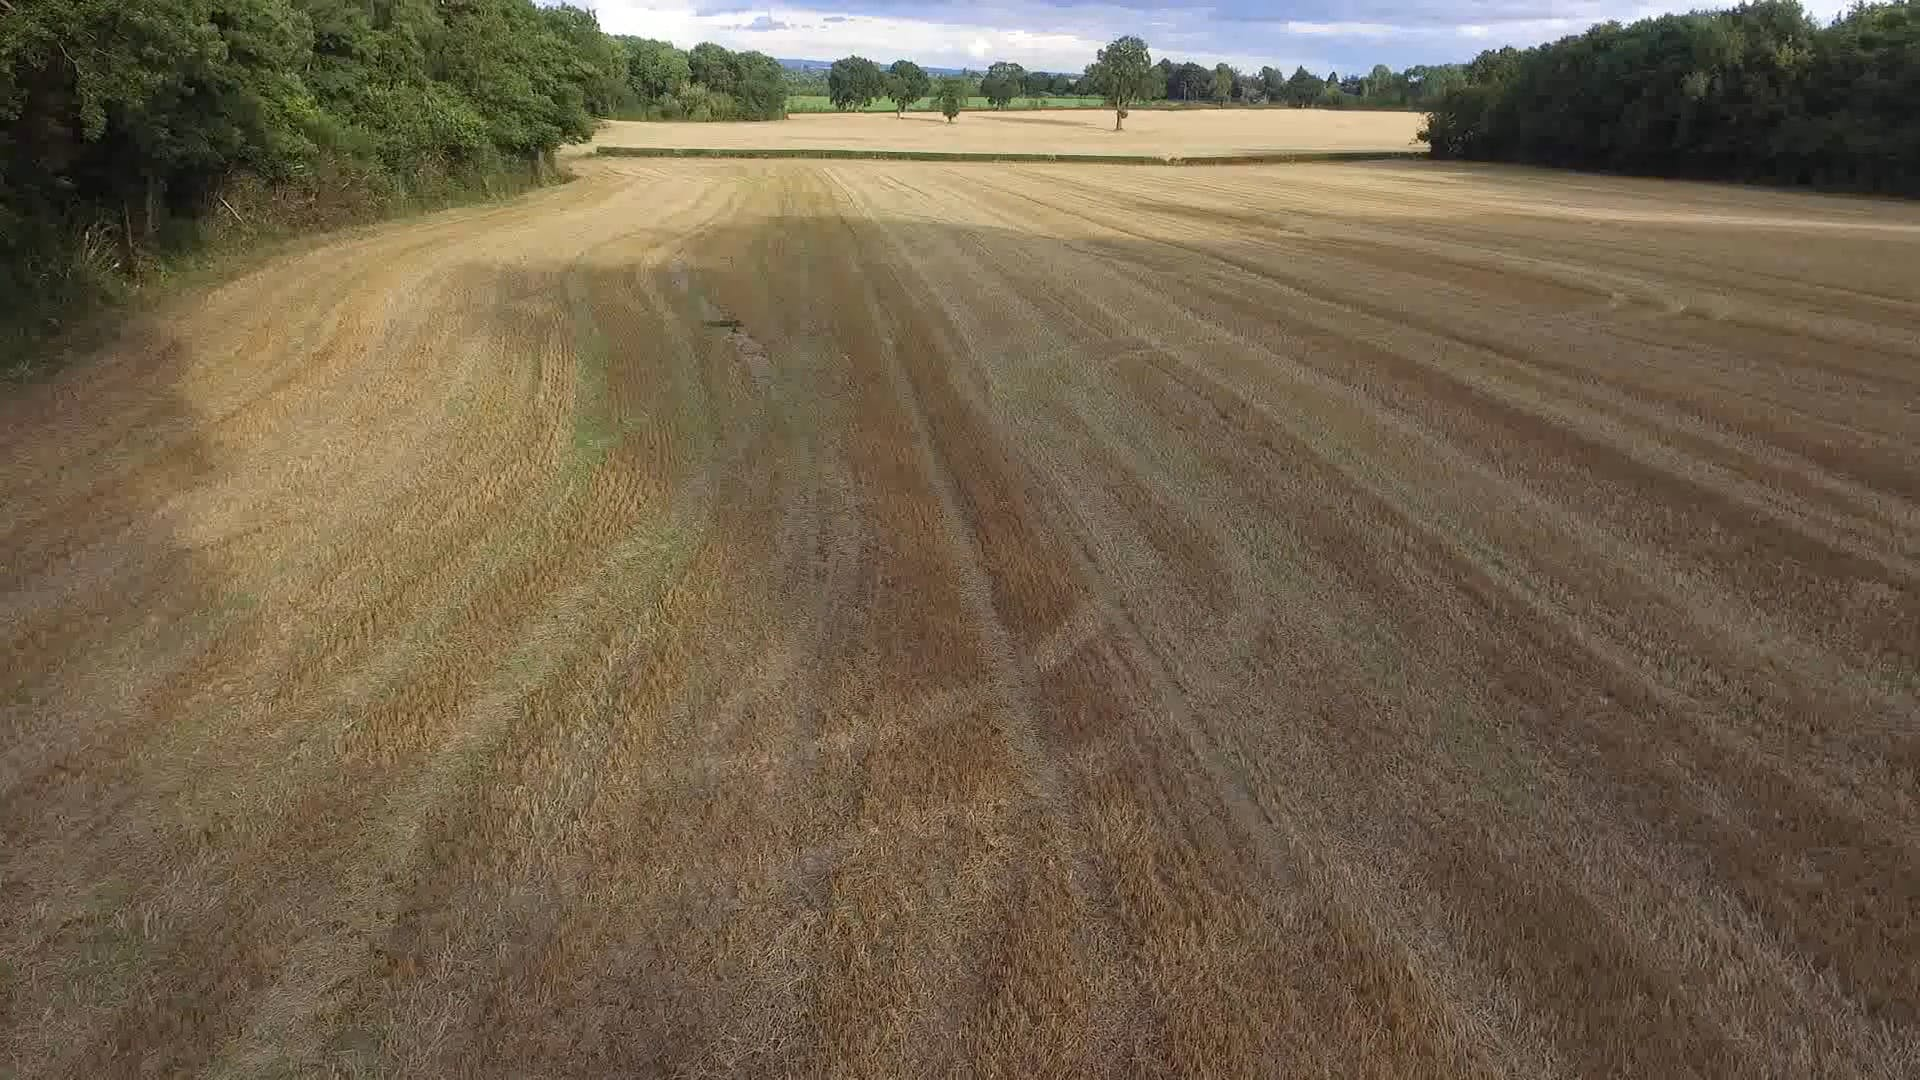 Drone View Of An Agricultural Land